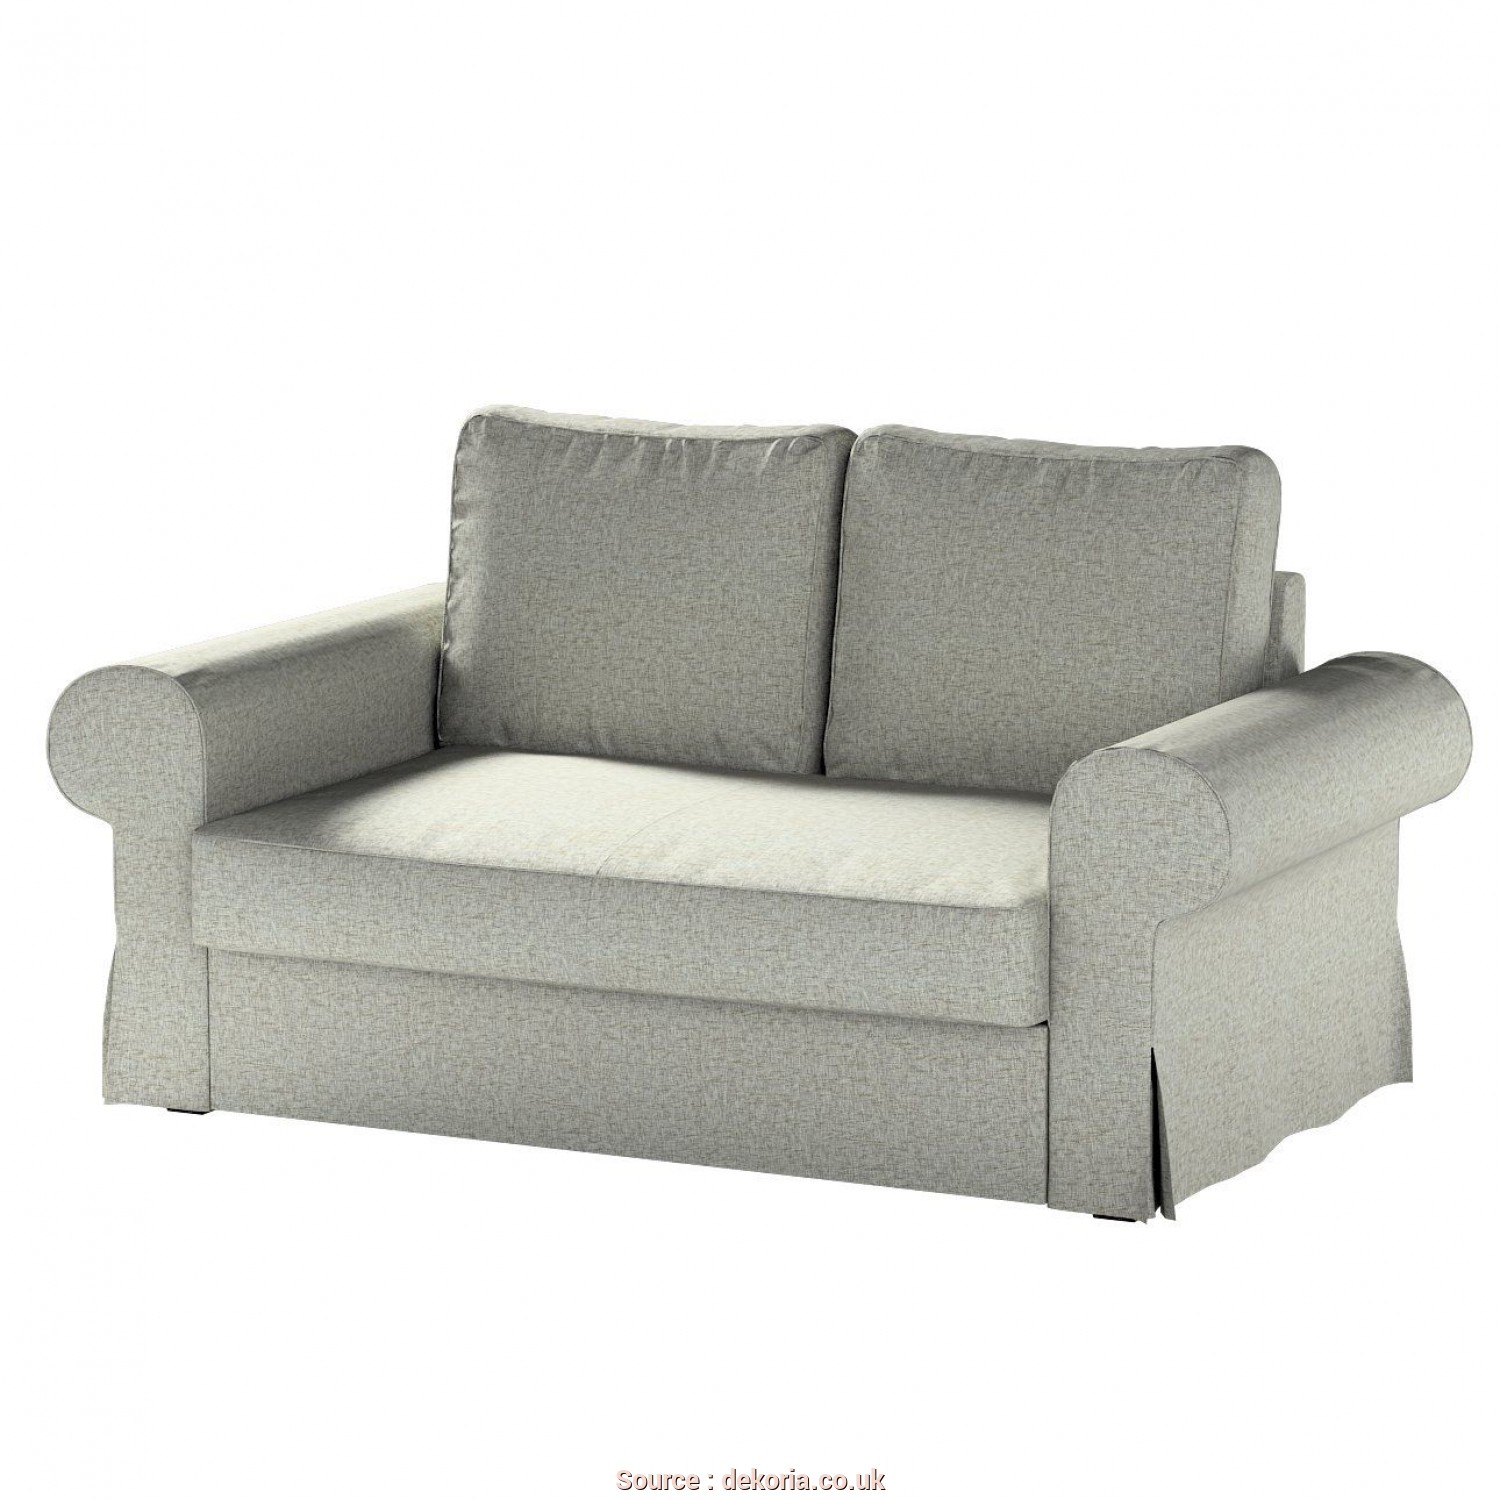 Ikea Backabro Bettsofa, A Buon Mercato Backabro 2-Seat Sofa, Cover In Collection Living, Fabric: 106-96